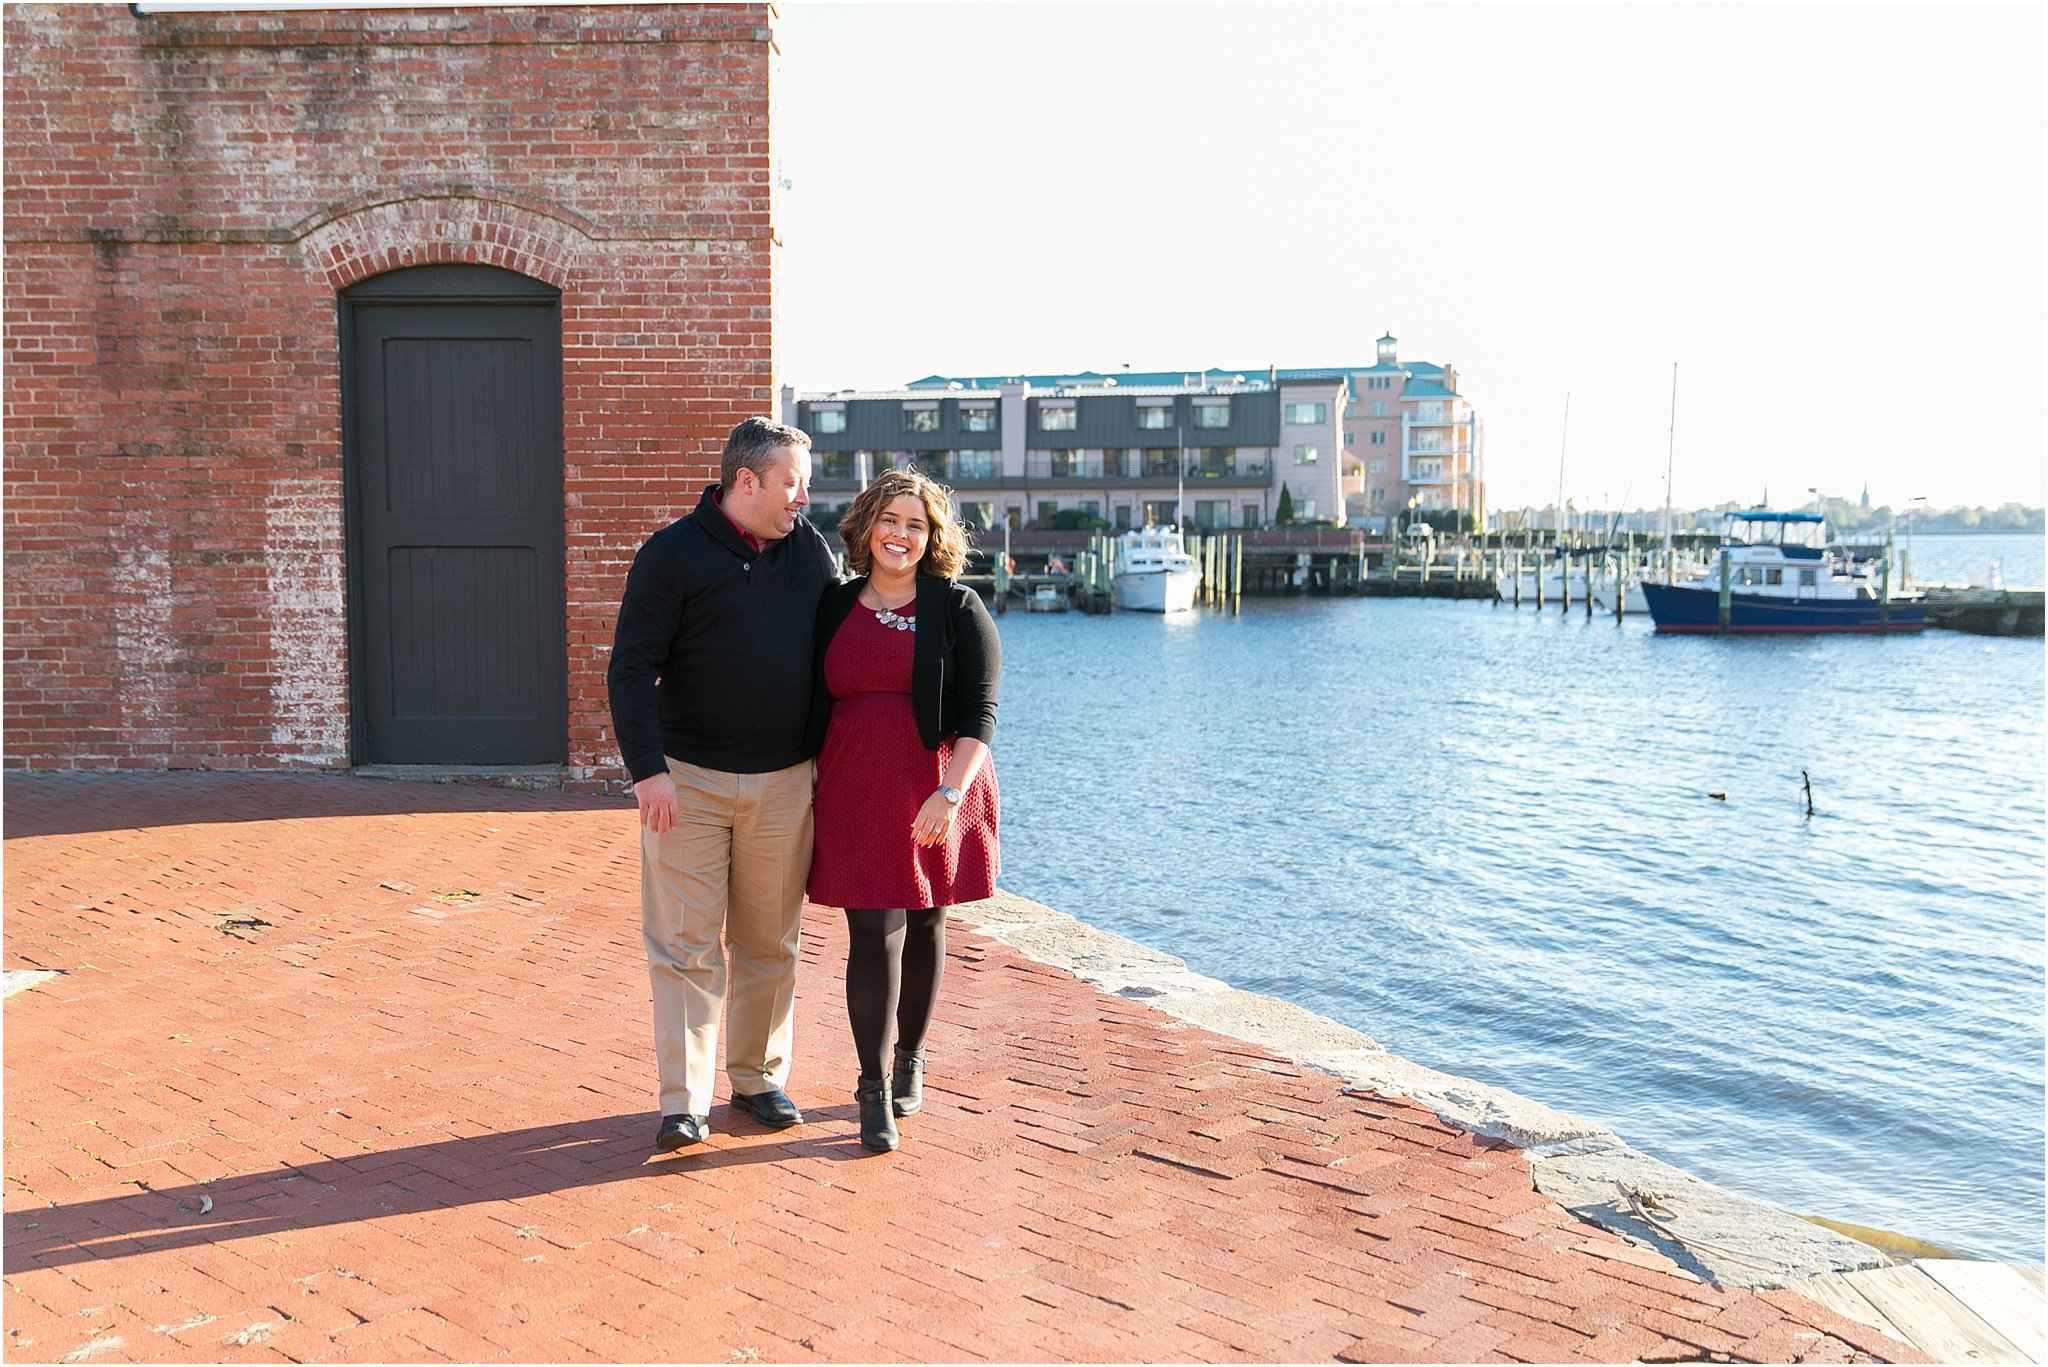 jessica_ryan_photography_virginia_beach_virginia_engagements_engagement_photographer_candid_1046